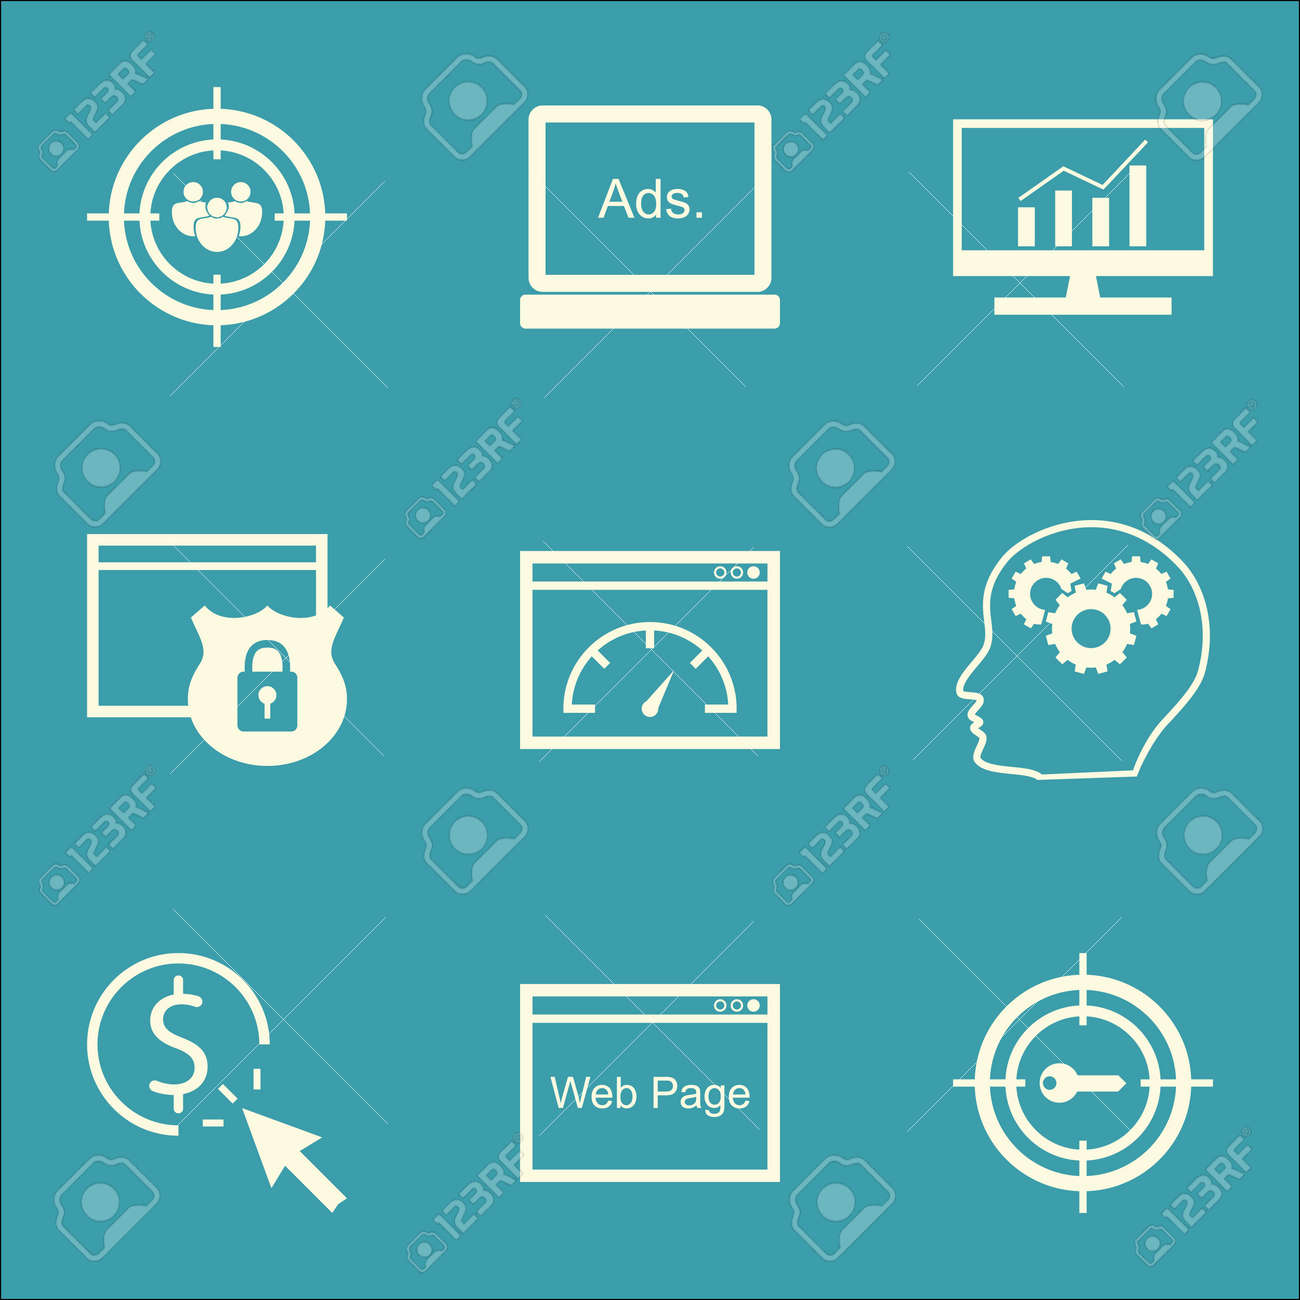 Set Of Marketing Icons On Digital Media, Loading Speed And Security